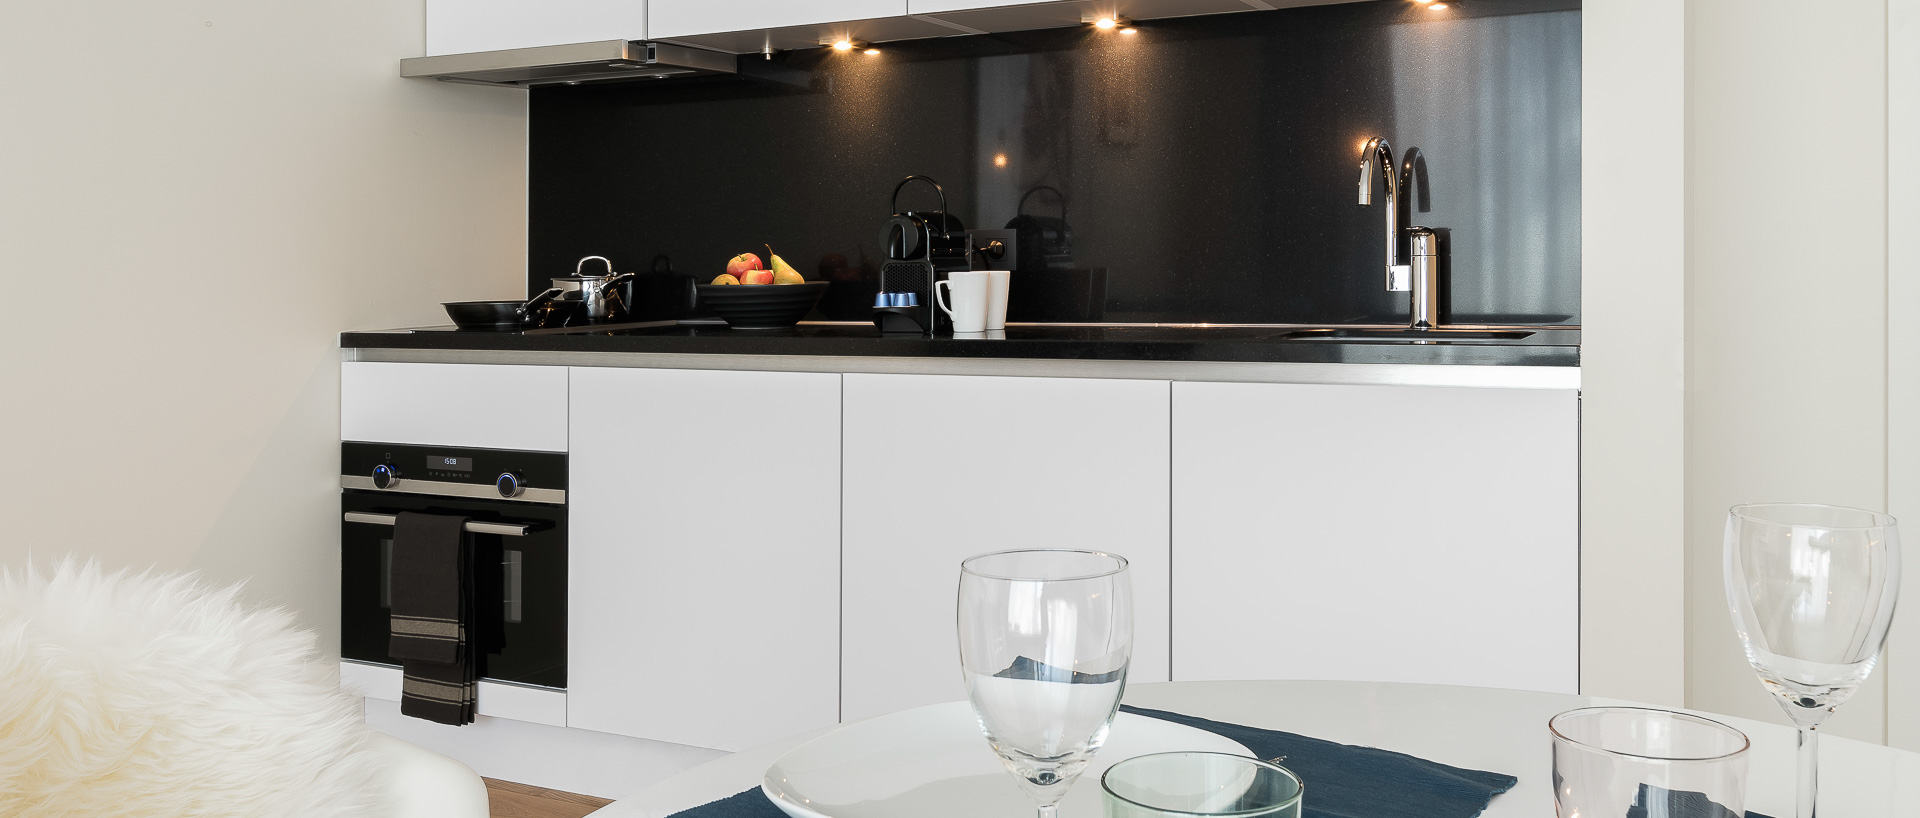 Kitchenette and table in PREMIER SUITES PLUS Antwerp